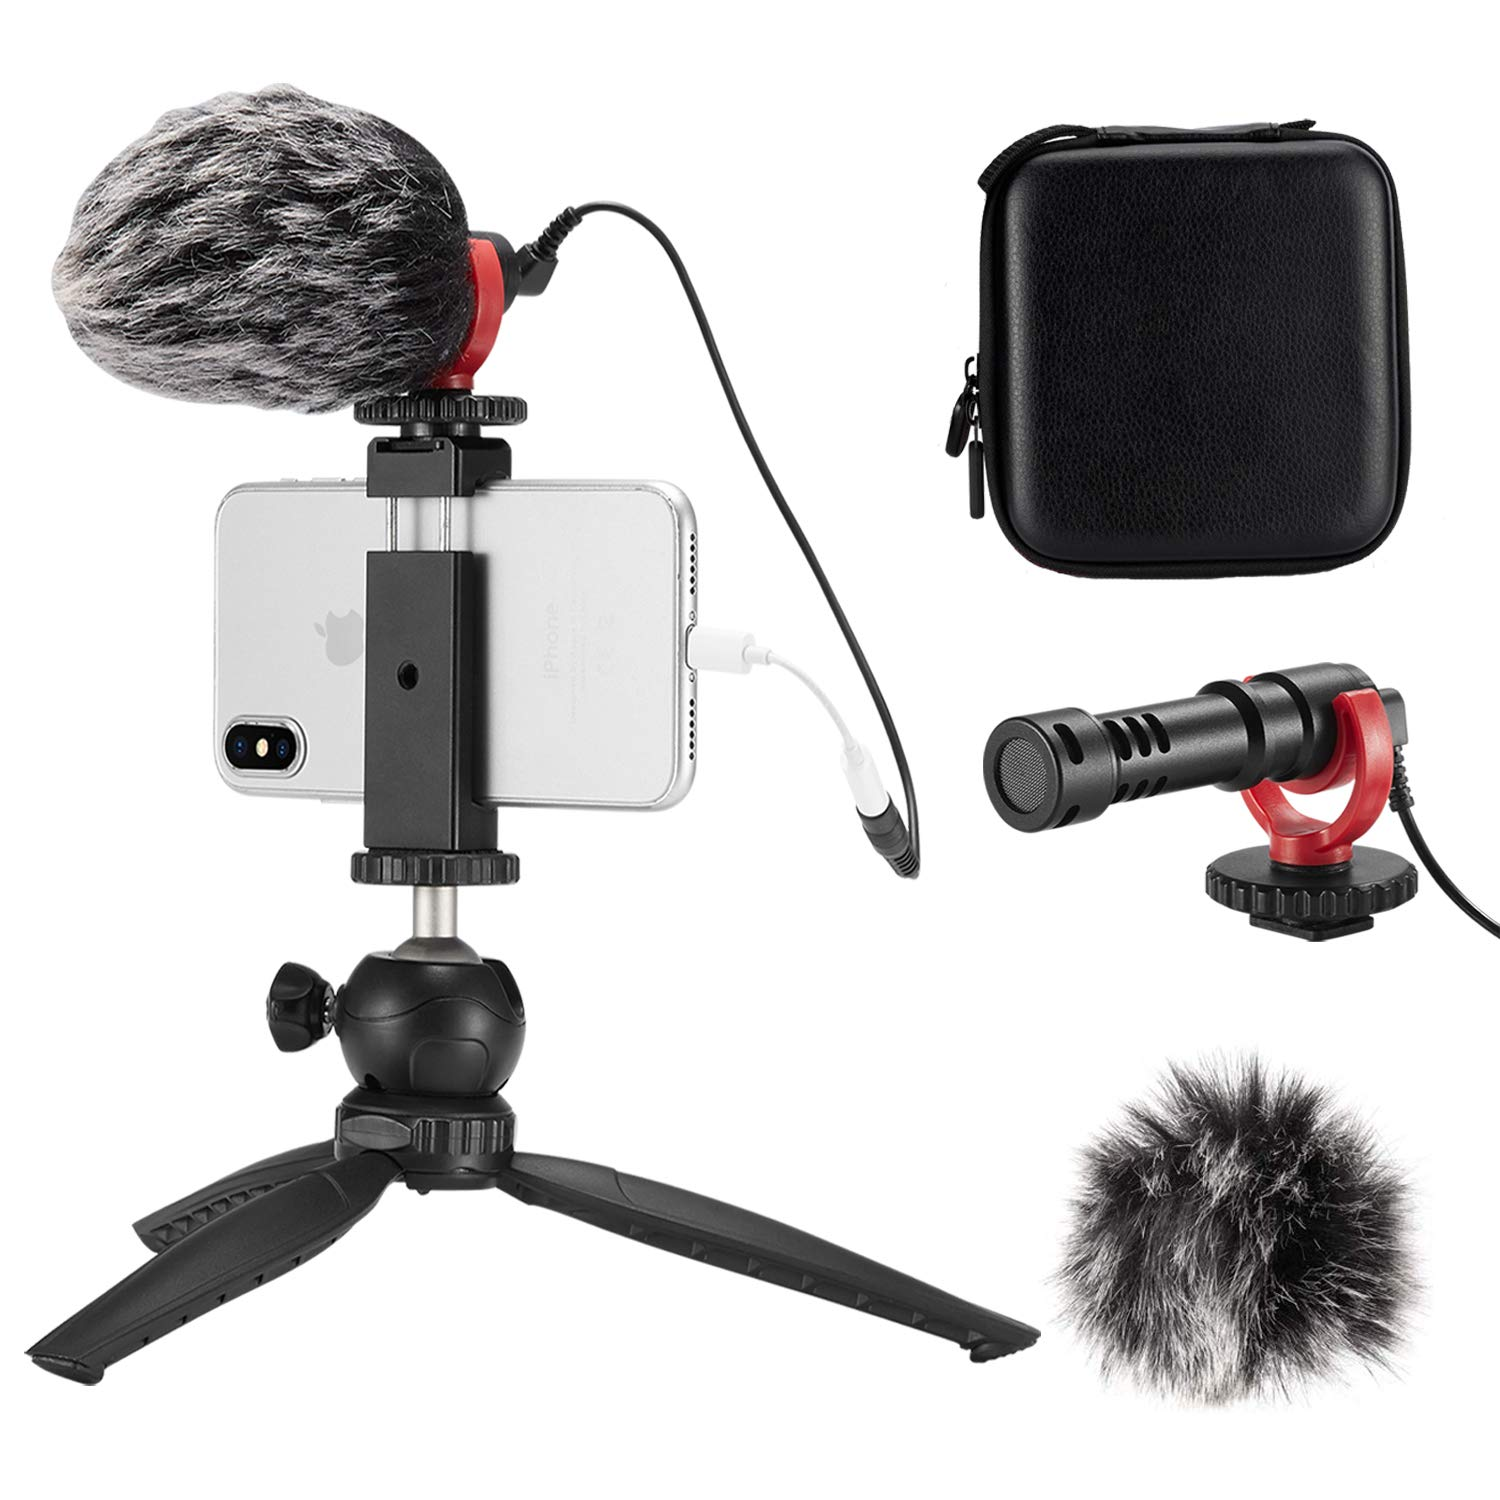 FULAIM Smartphone Video Microphone w/Anti-Shock Mount Phone Holder Tripod Compatible with iPhone Samsung etc. Mobiles and DSLR Camera for YouTube Vlogging Facebook Livestream Audio/Video Recording by FULAIM